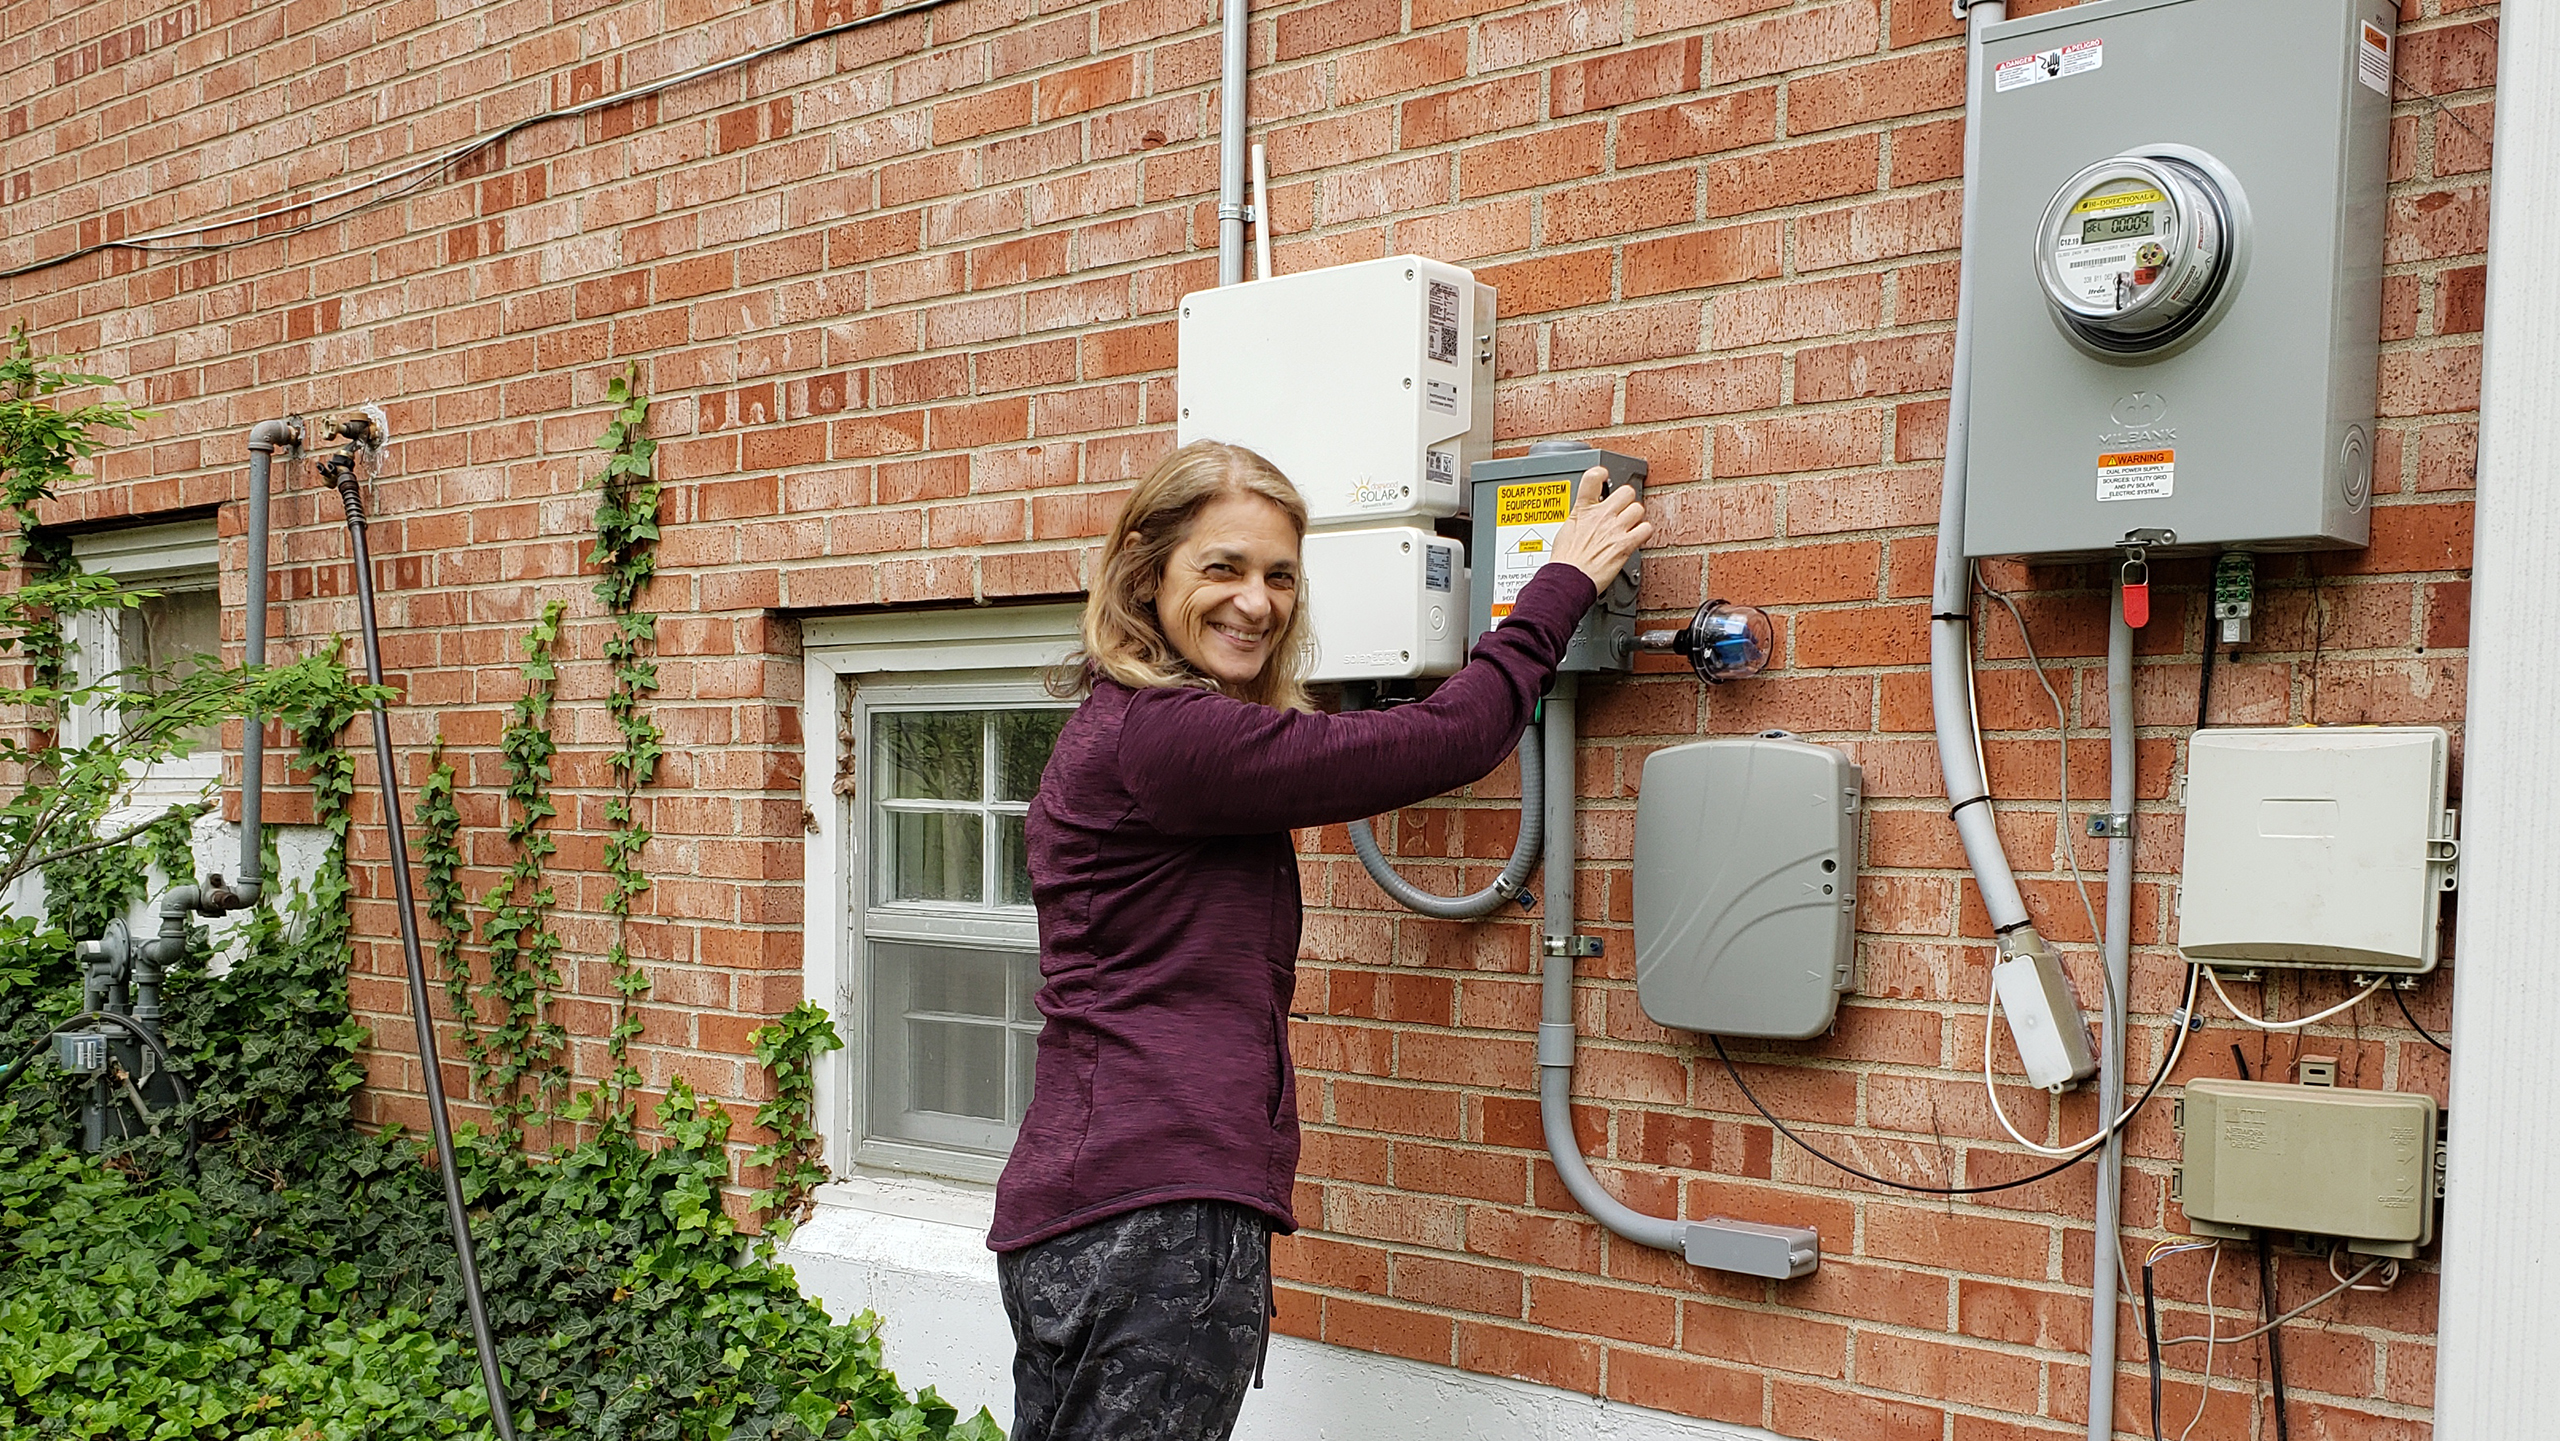 Woman stands posed to flip the switch where the solar system integrates with the utility panel outside a brick home. She is smiling and looking over her shoulder at the camera. Some green vines can be seen to her left, showing it is an established home.